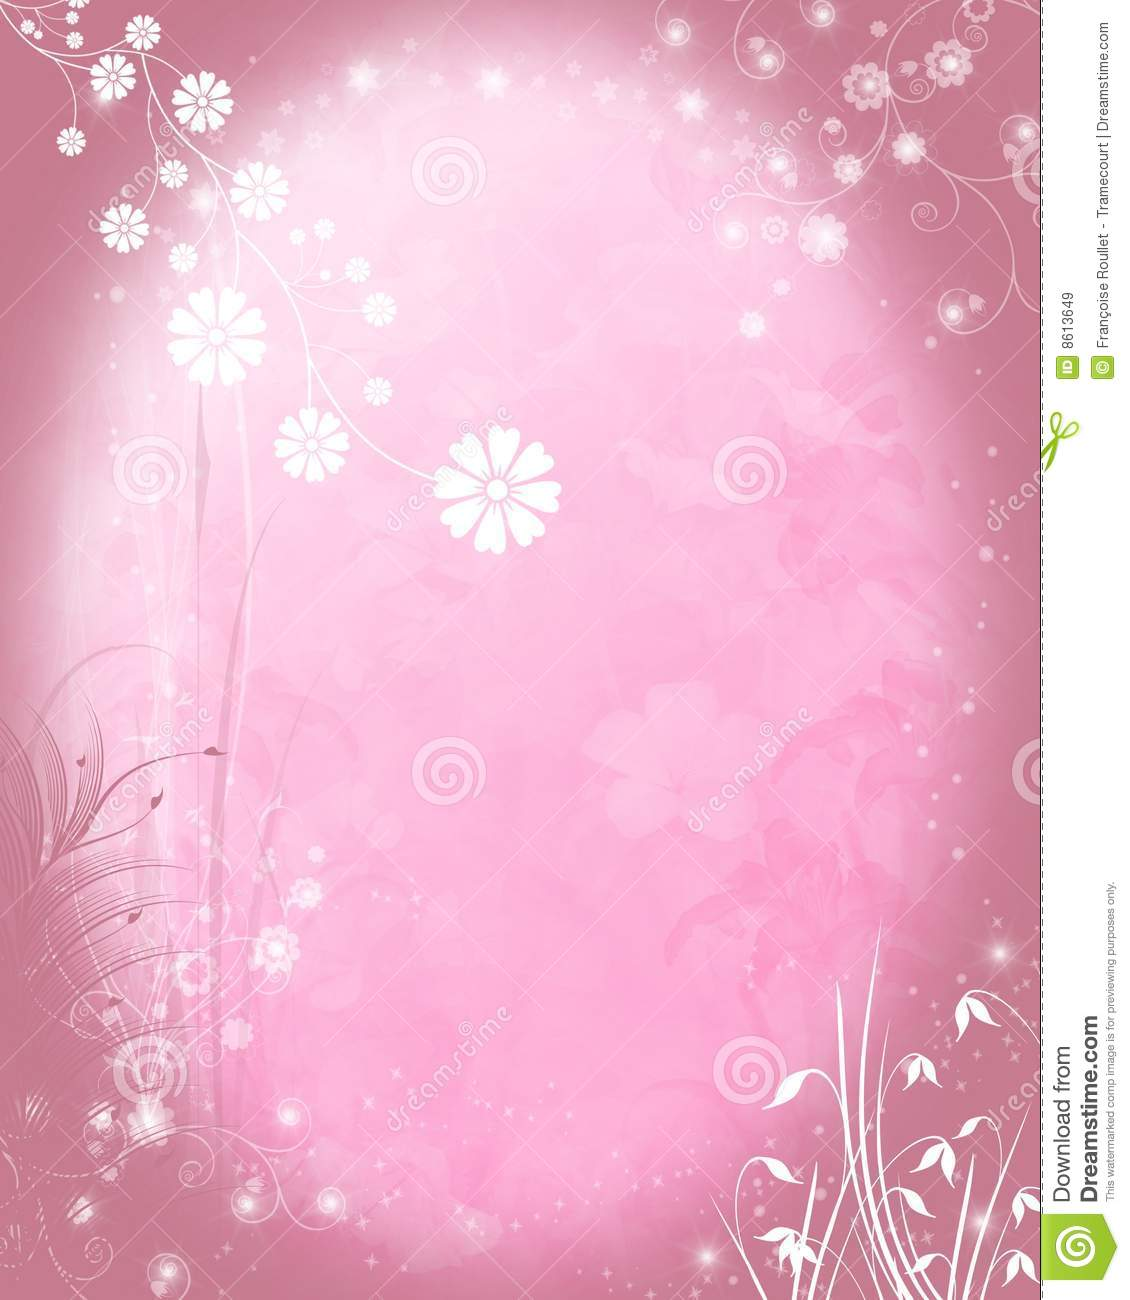 pink floral background jpg - photo #49